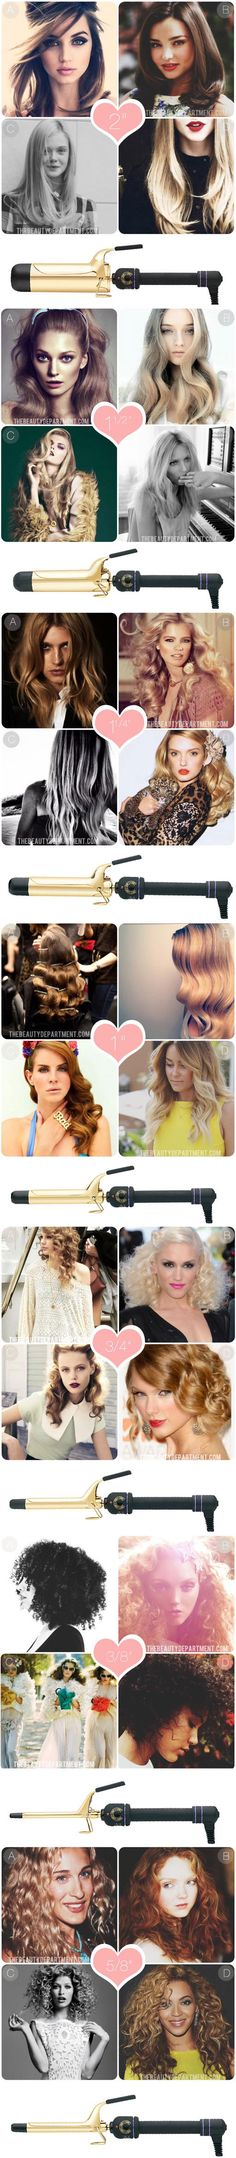 What does each curling iron do? Explanation of uses and also how to accomplish each style shown in the photos. #thebeautydept